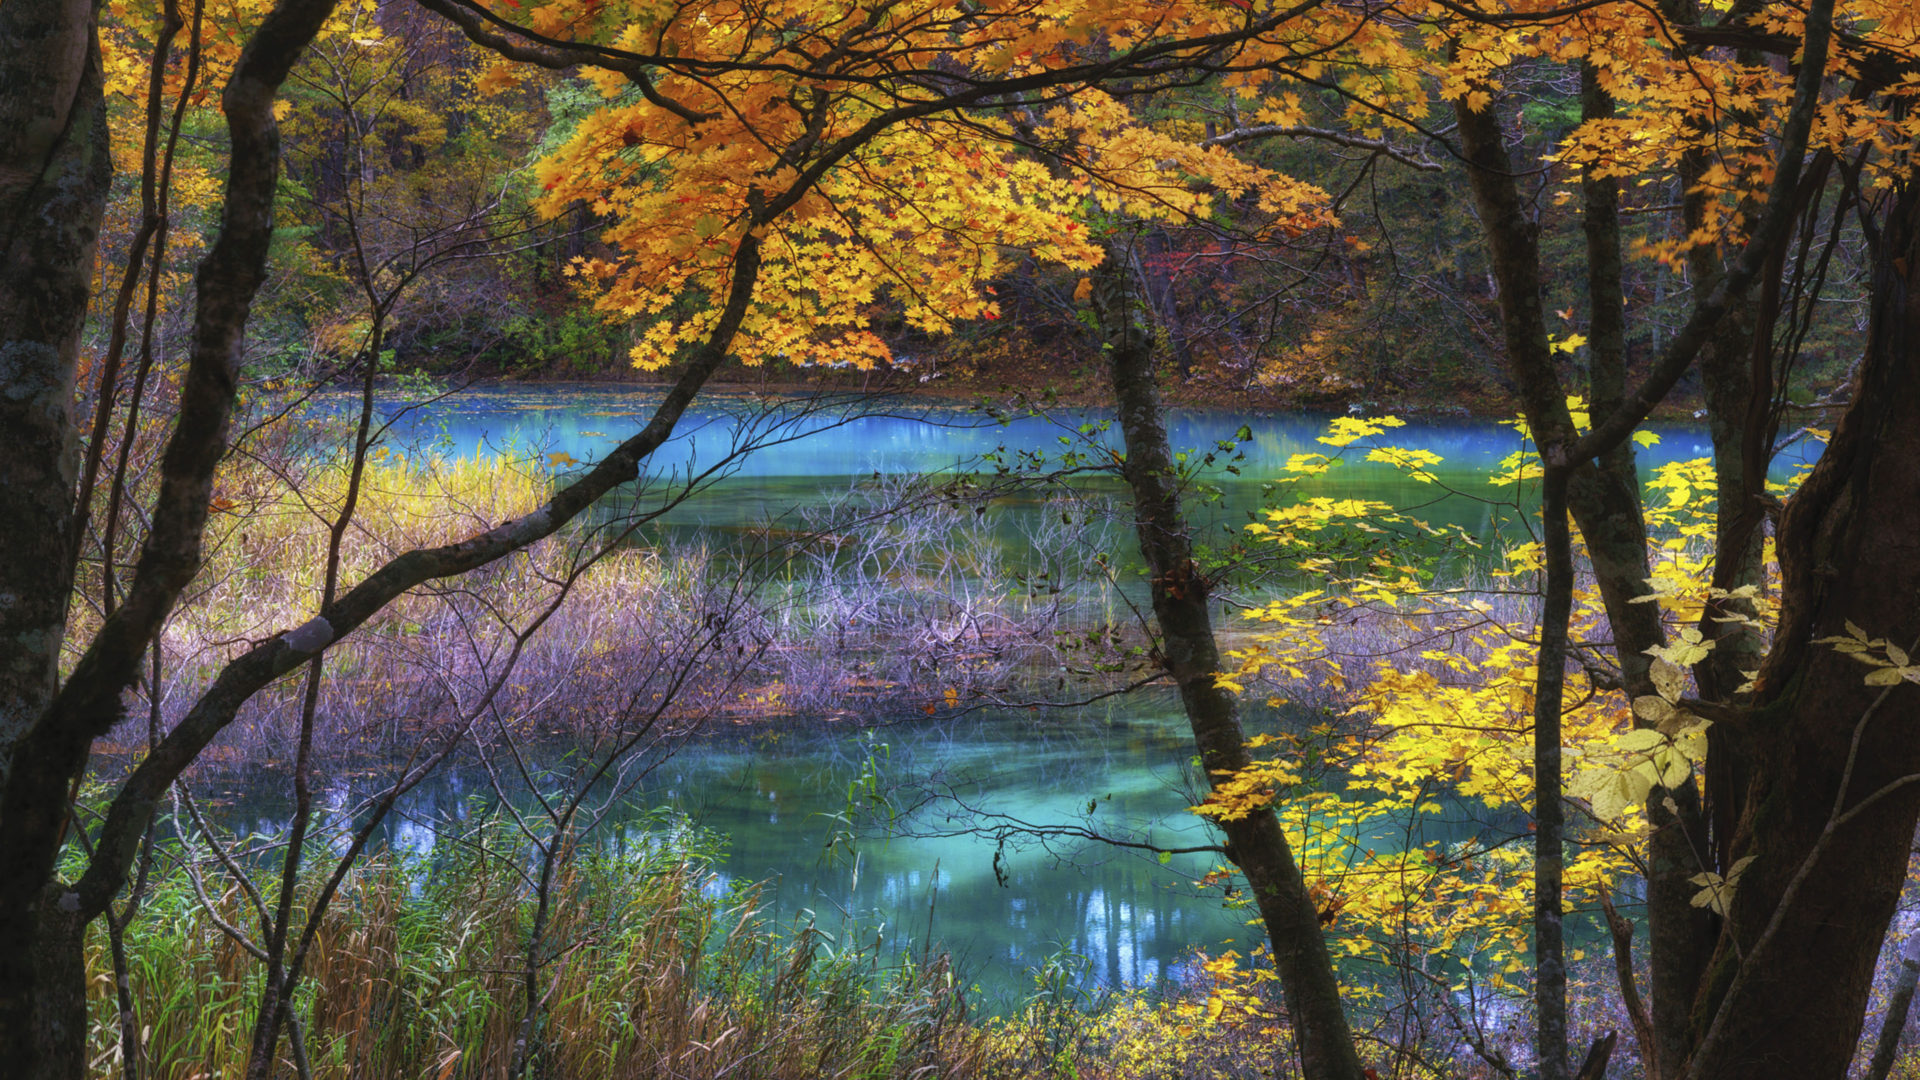 Fall Flowers Wallpaper Hd Blue Lake Goshikinuma Fukushima Japan Autumn Scenery